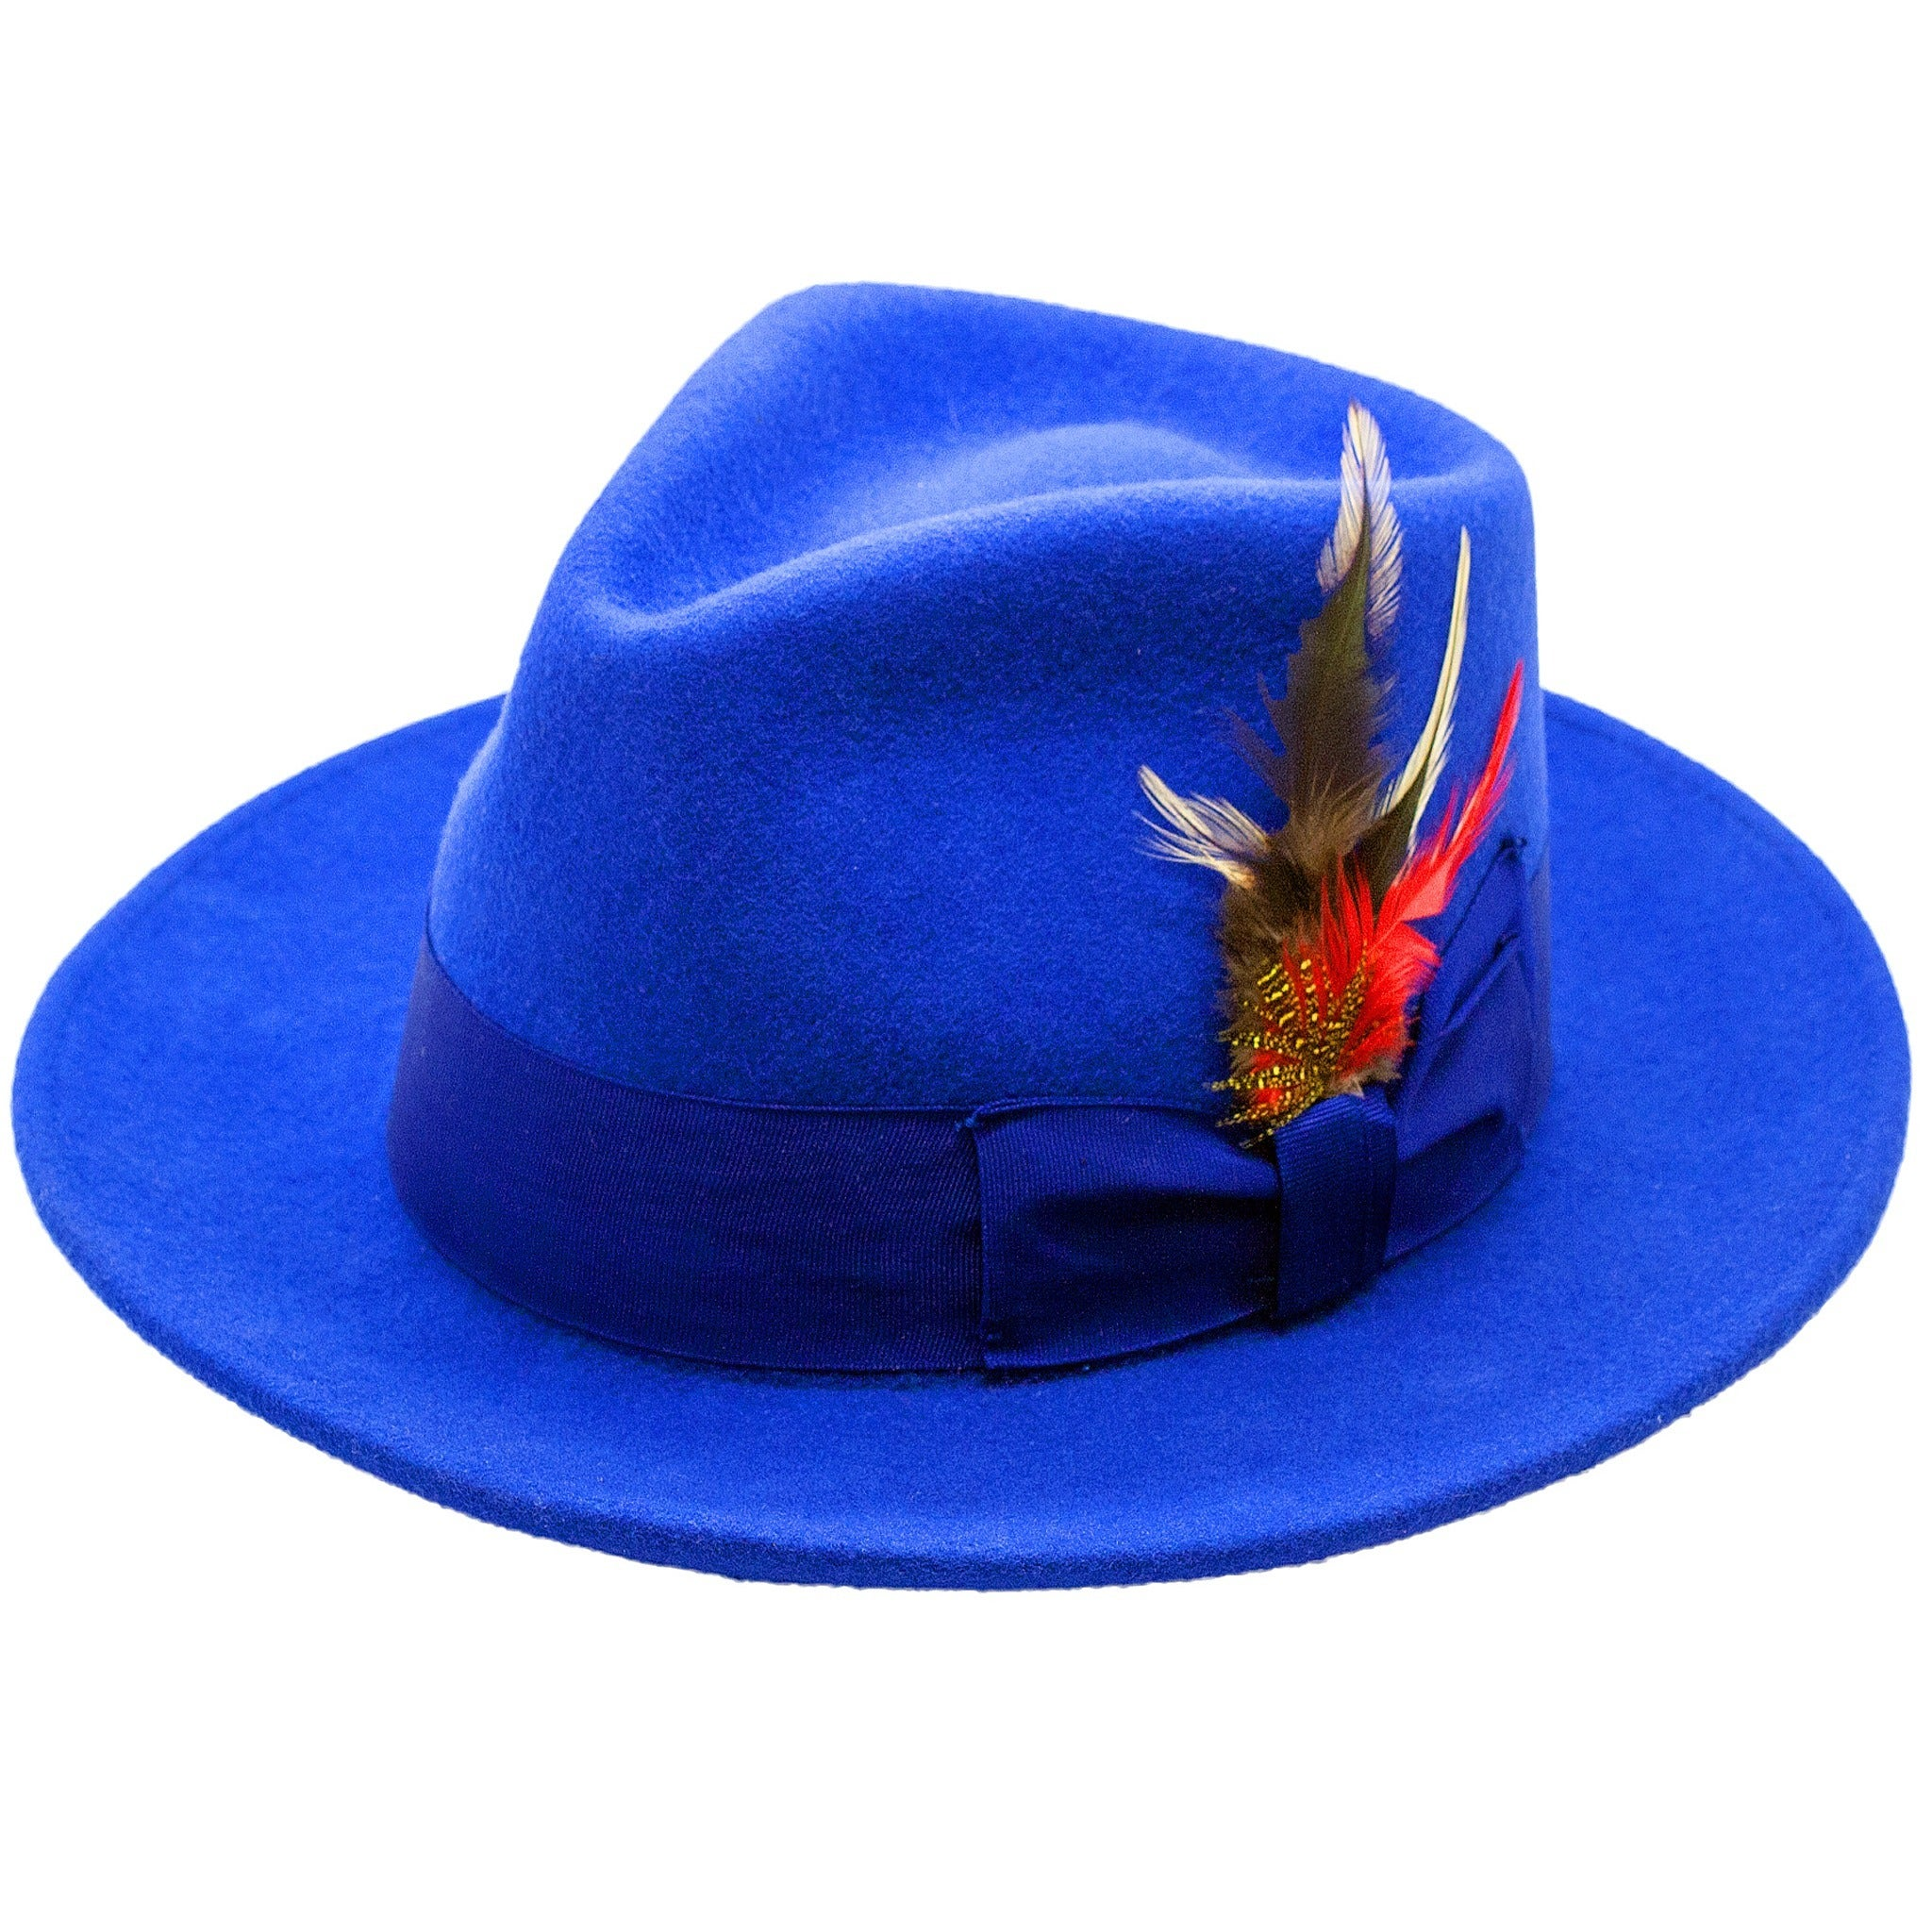 c35899d185cd8 Shop Ferrecci Men s Royal Blue Wool Felt Fedora Hat - Free Shipping On  Orders Over  45 - Overstock - 6575776